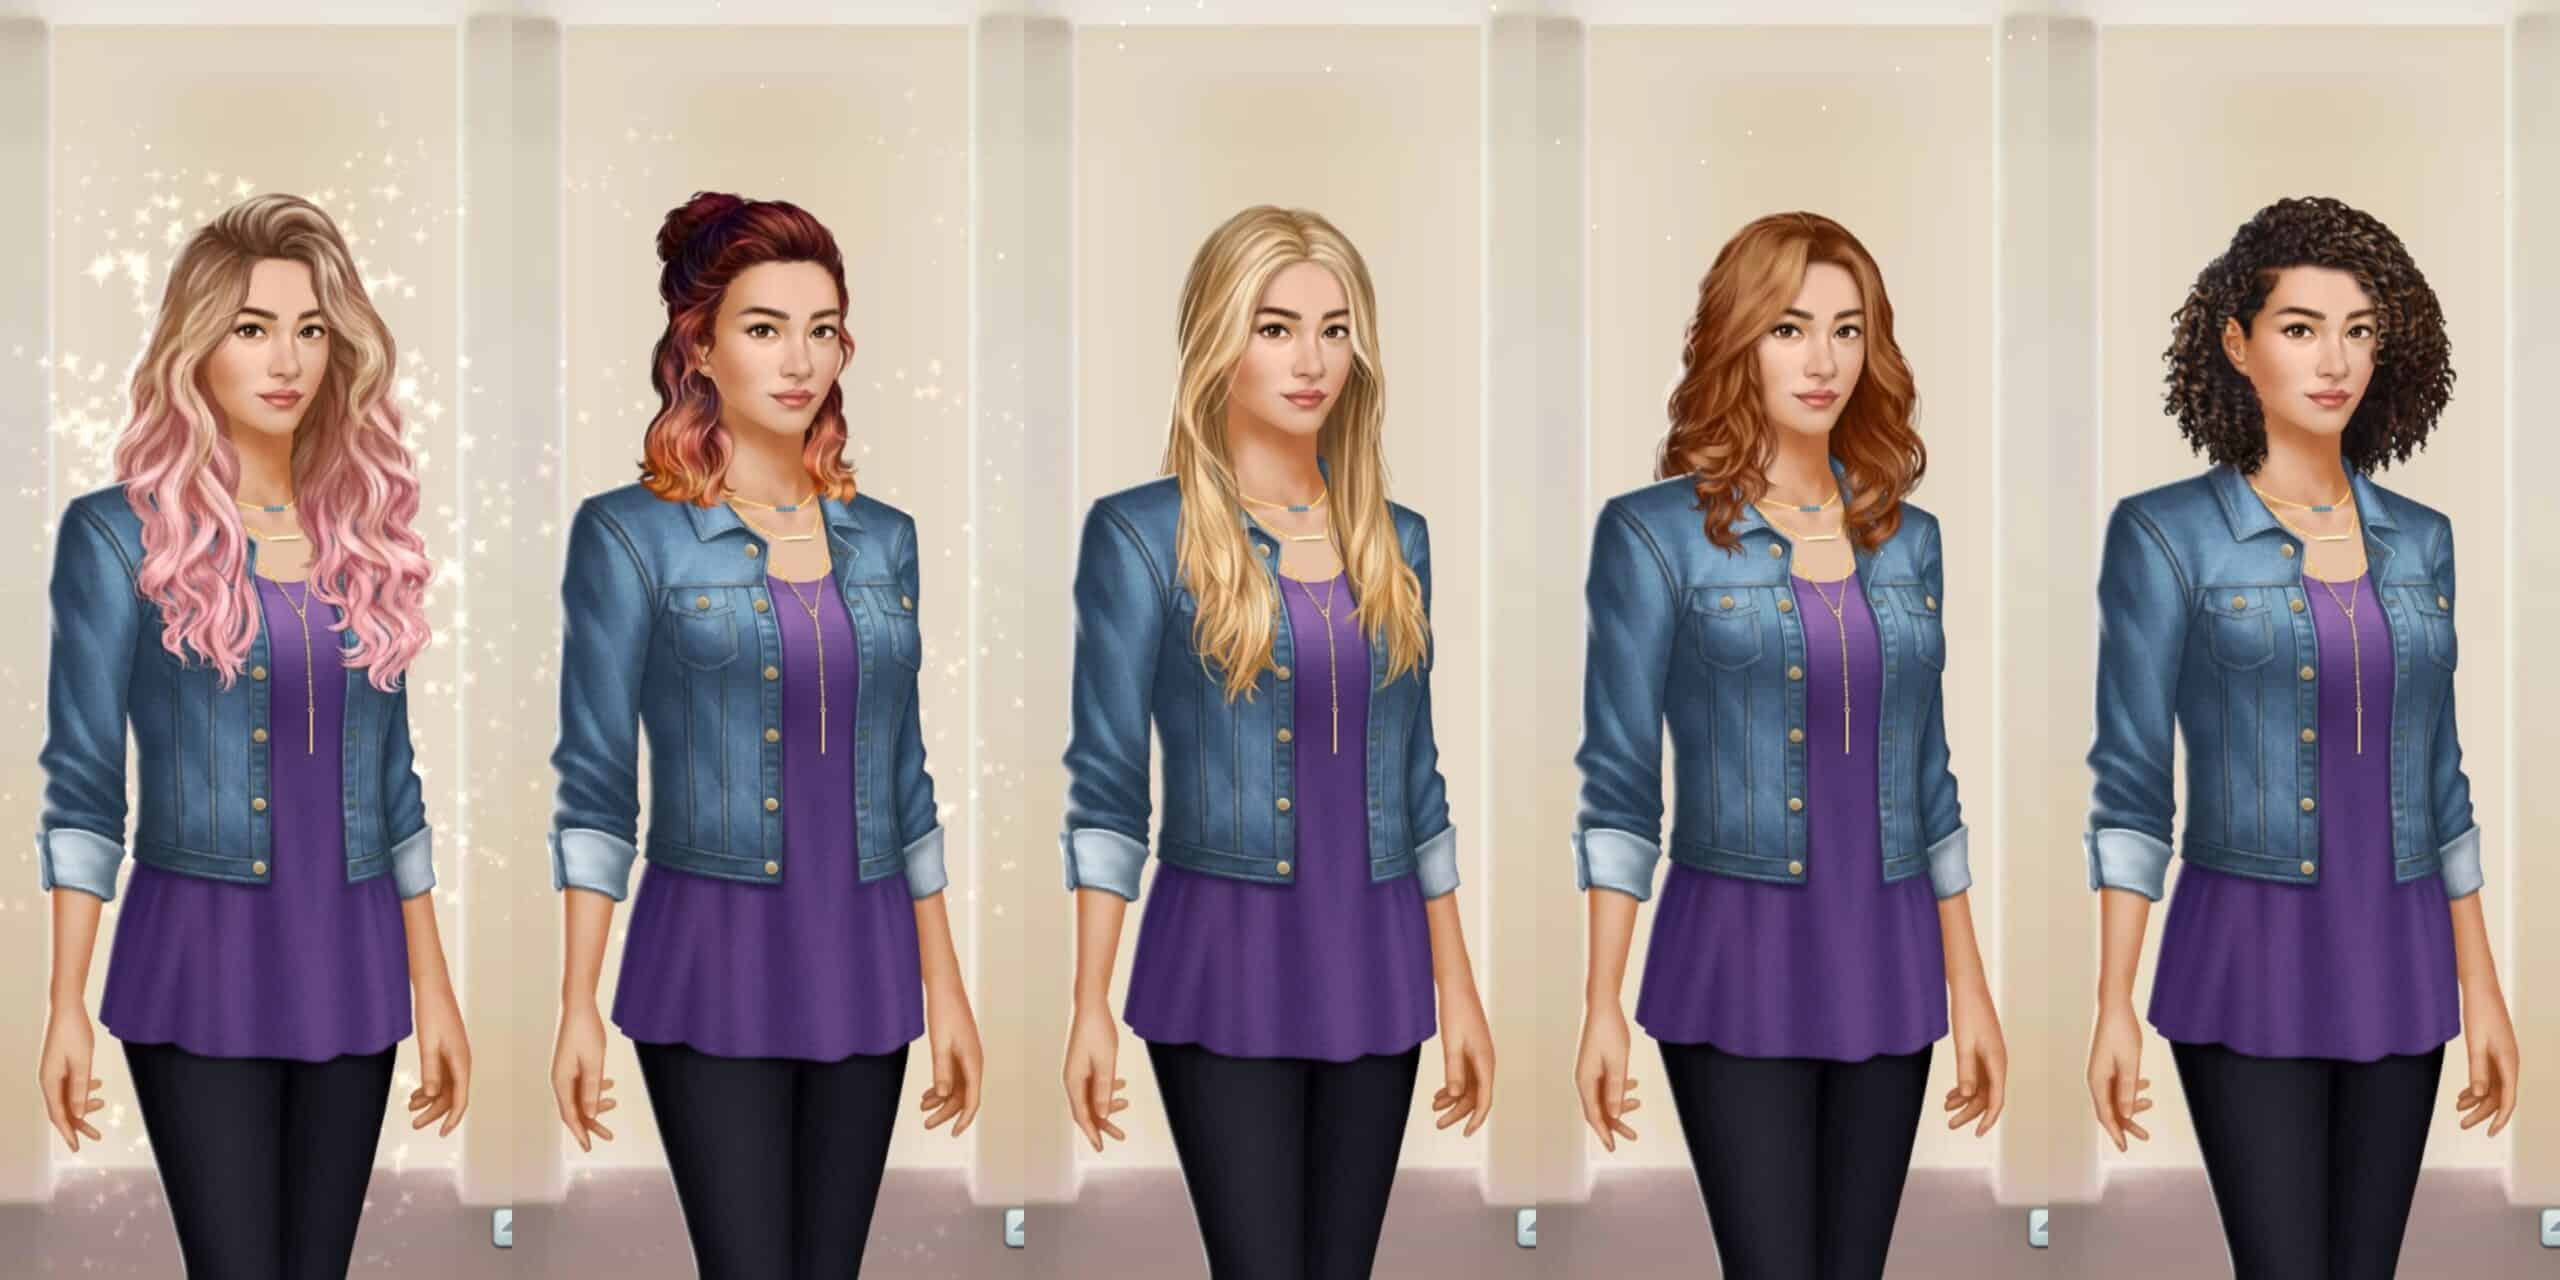 Unlocked-hairstyles-scaled